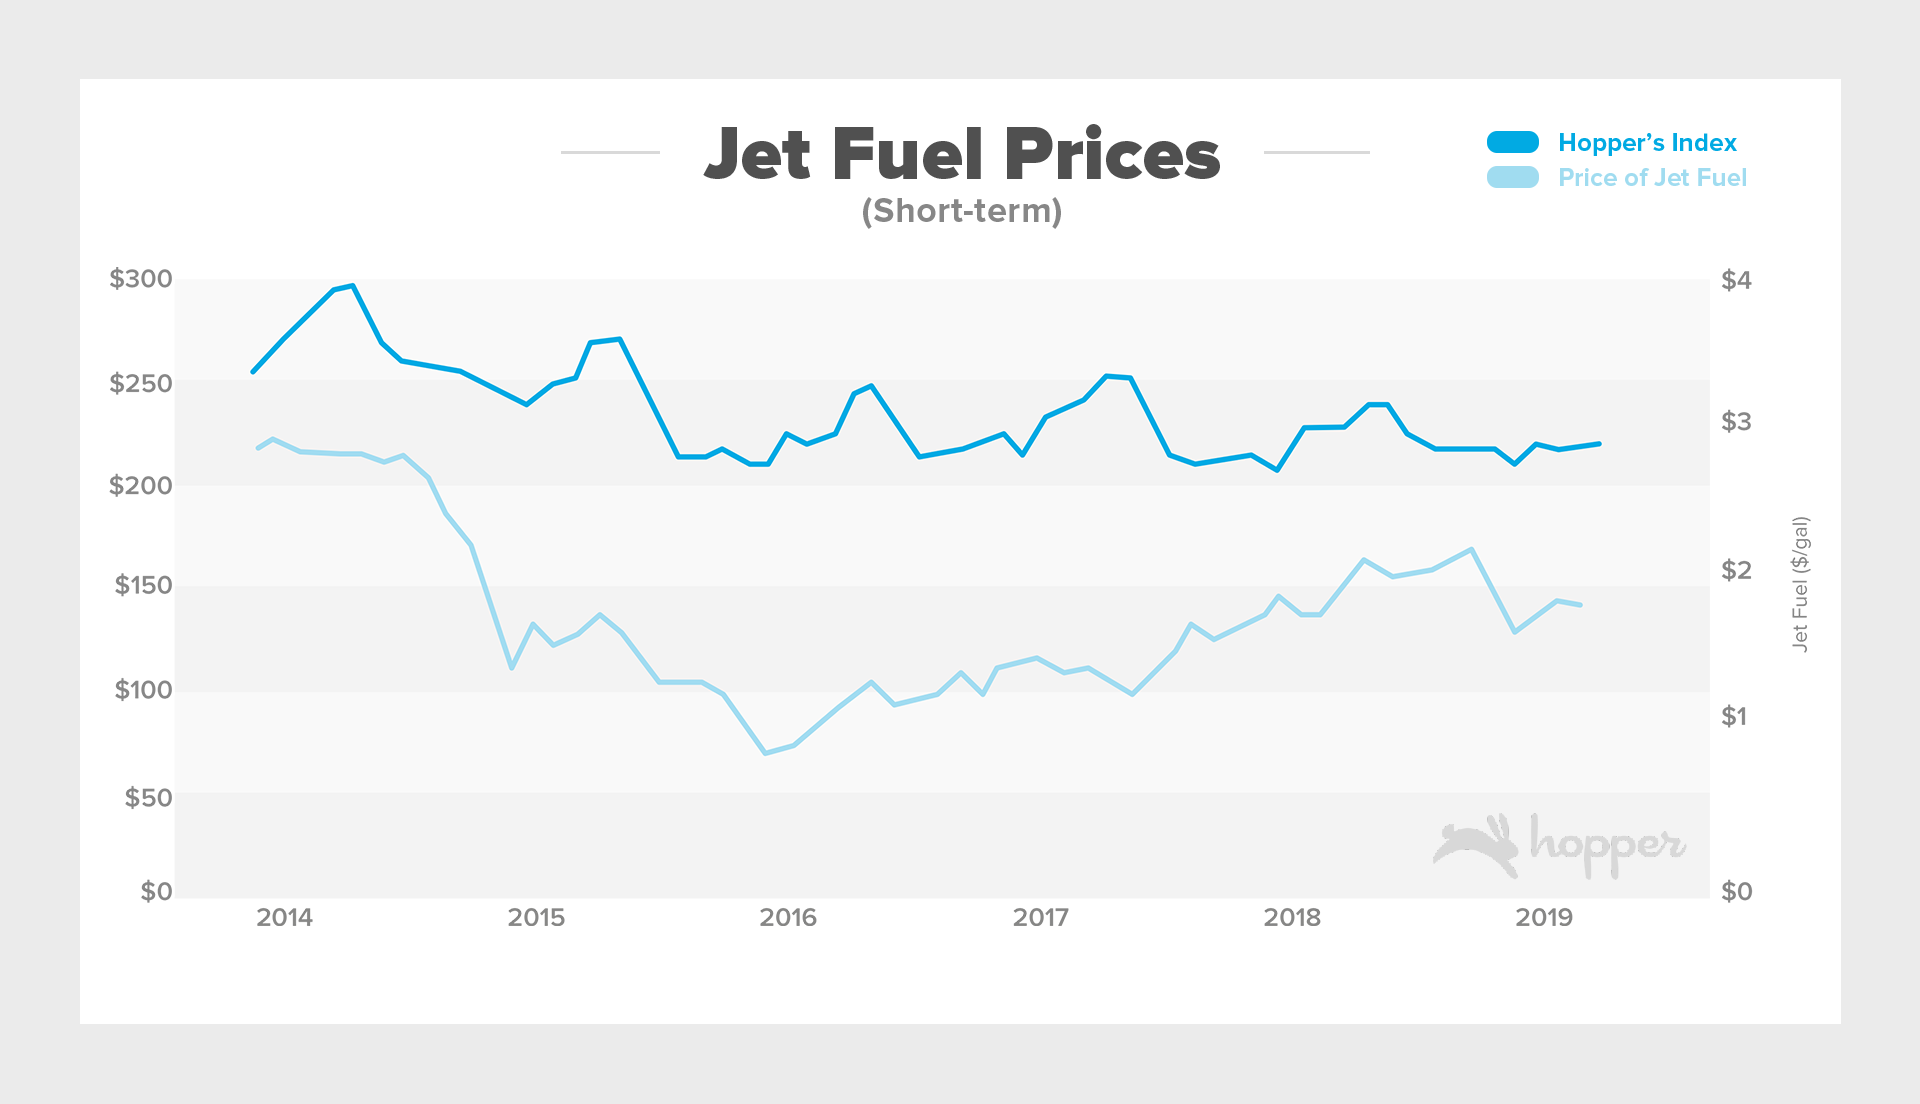 Jet Fuel Prices: April